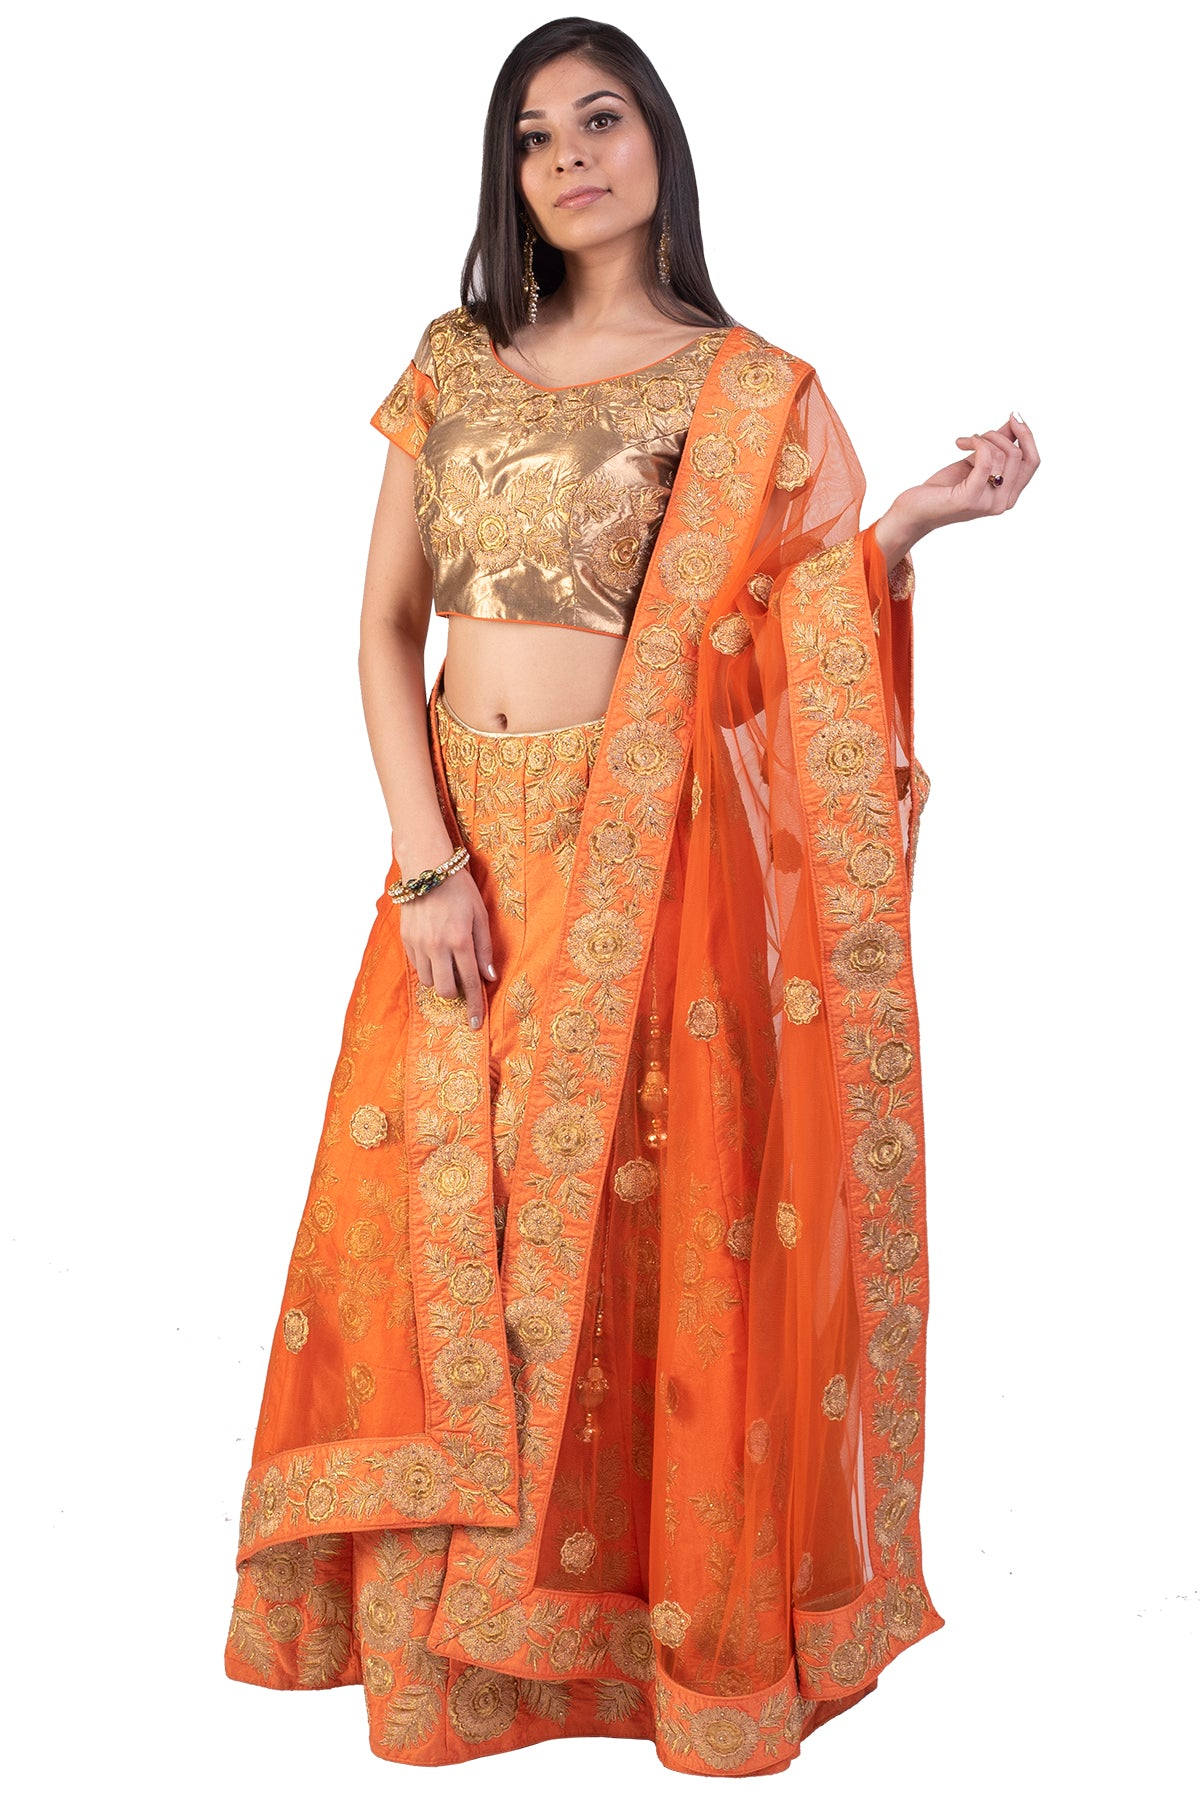 The intricate floral work in zardosi on the orange lehenga is perfect for a mehendi and sangeet function. A show-stopper look, without a doubt.